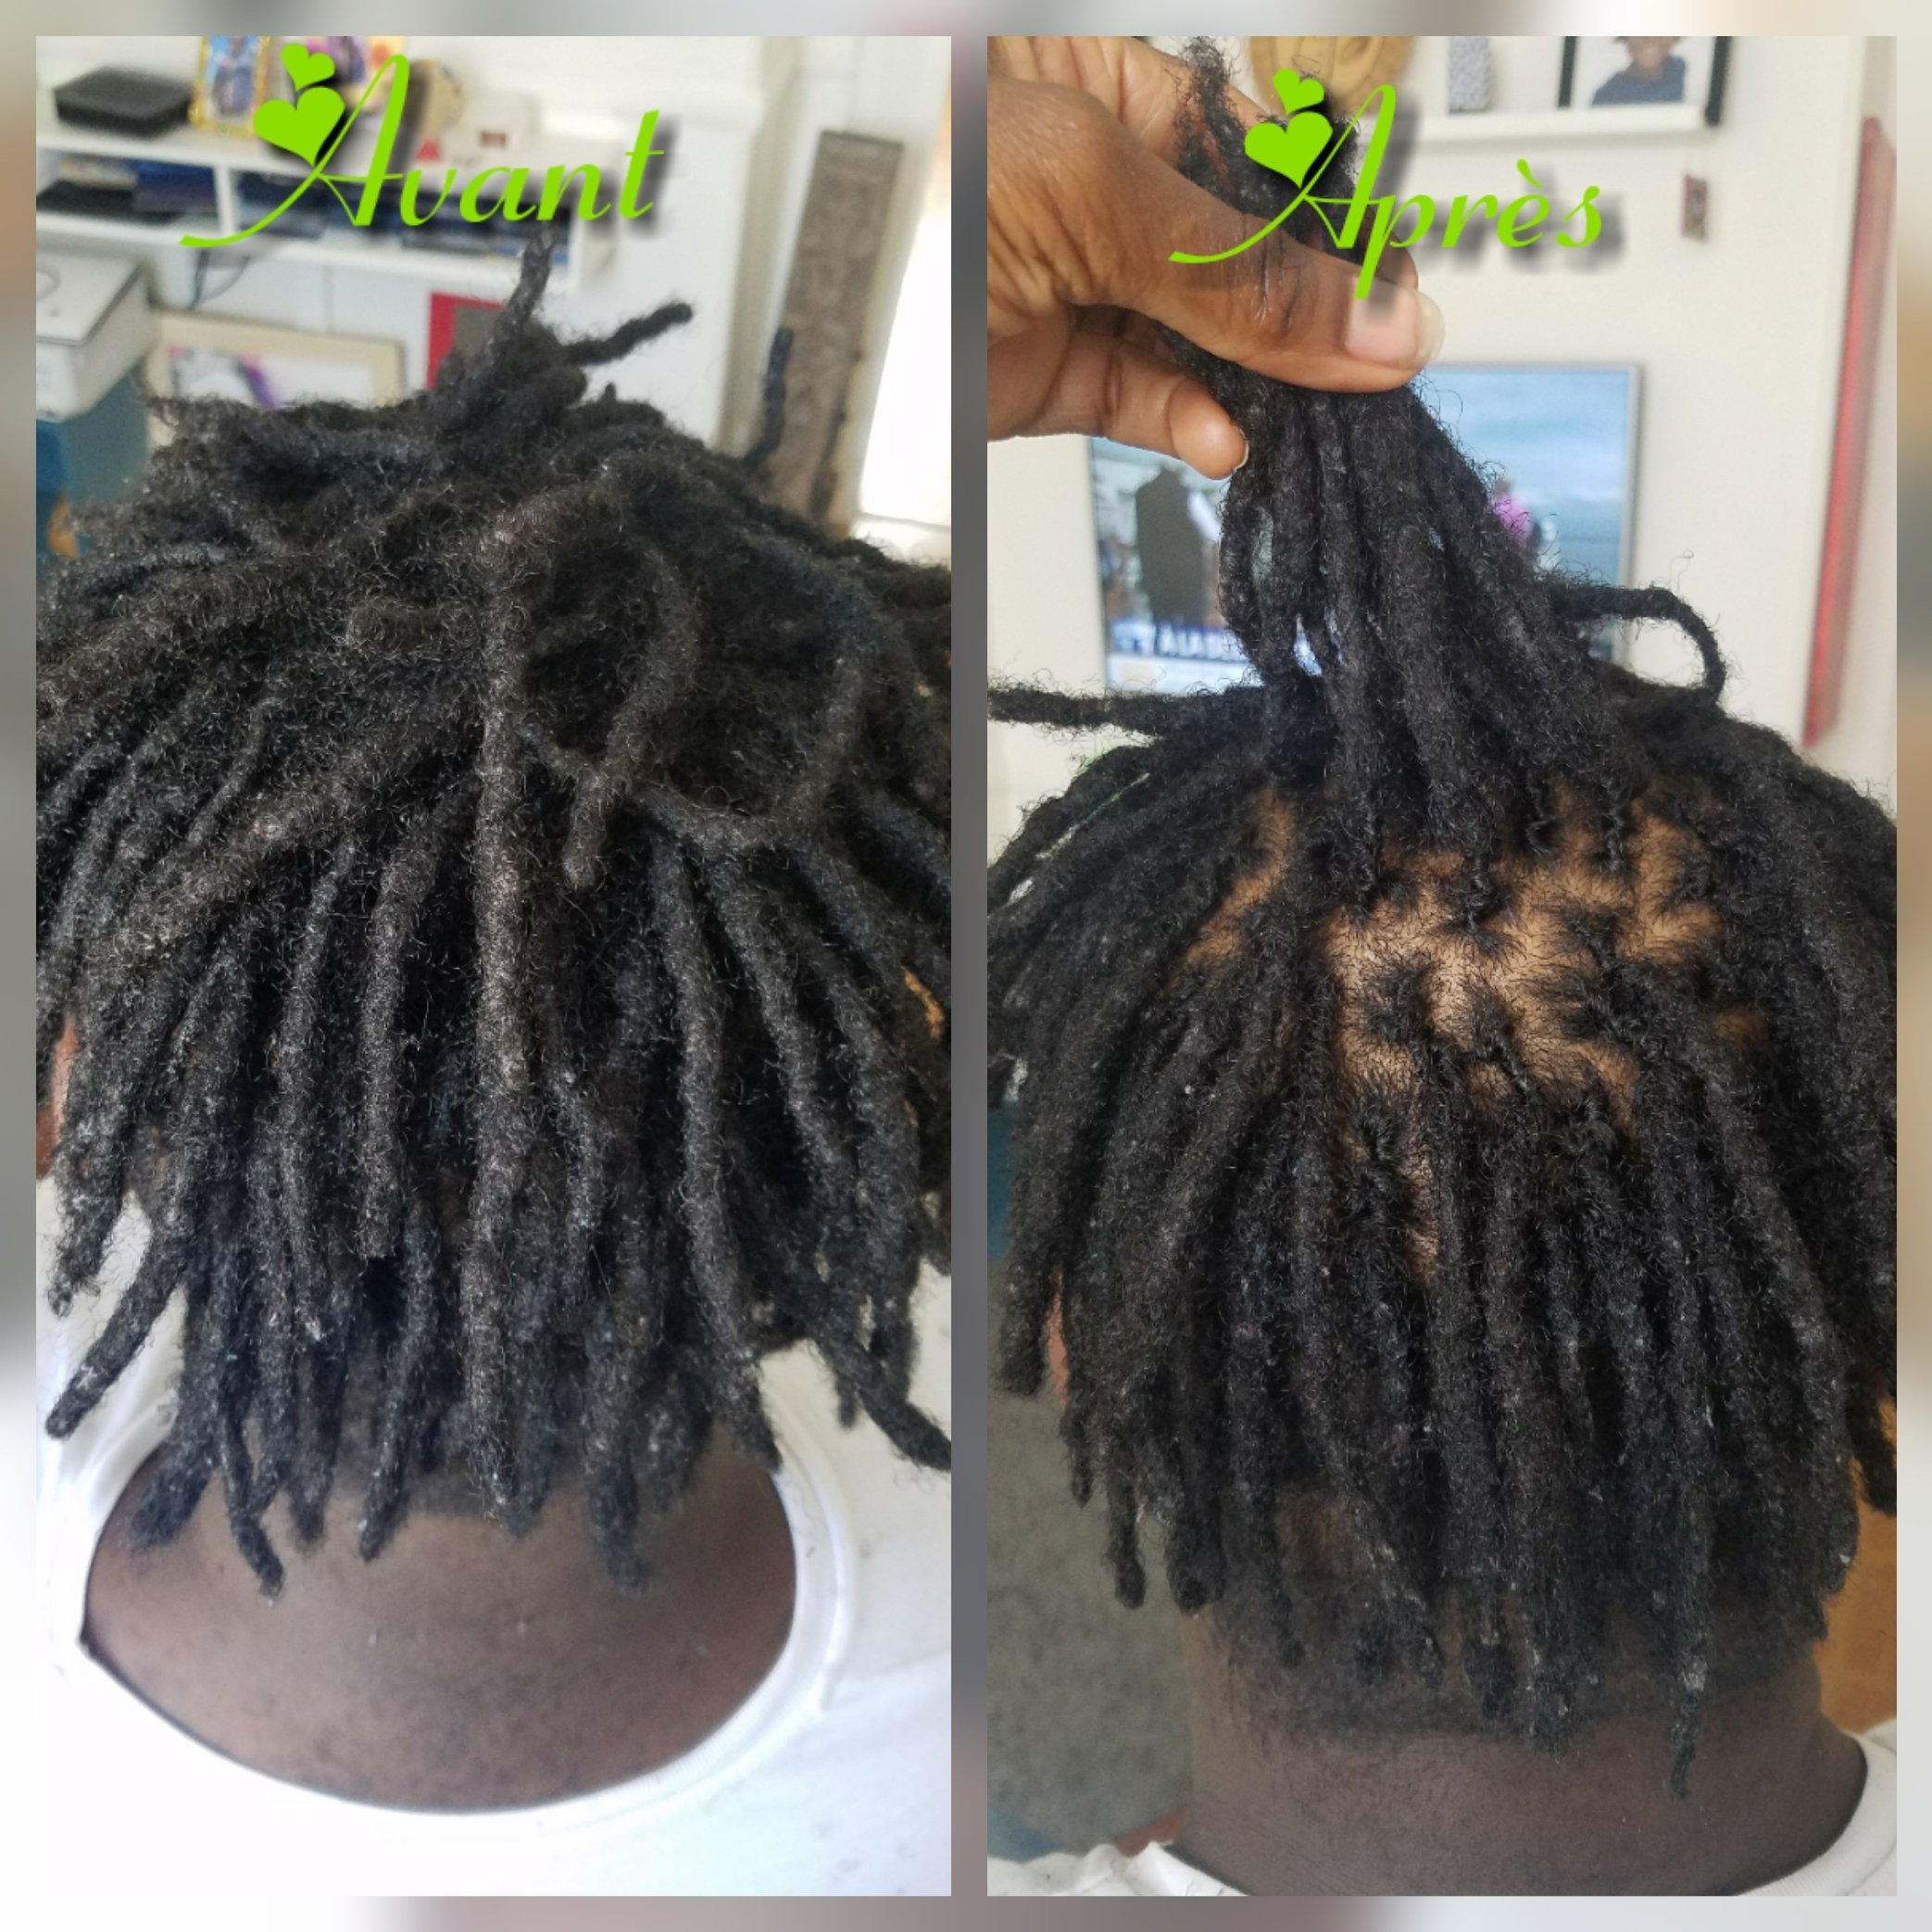 salon de coiffure afro tresse tresses box braids crochet braids vanilles tissages paris 75 77 78 91 92 93 94 95 MYJRZFLO